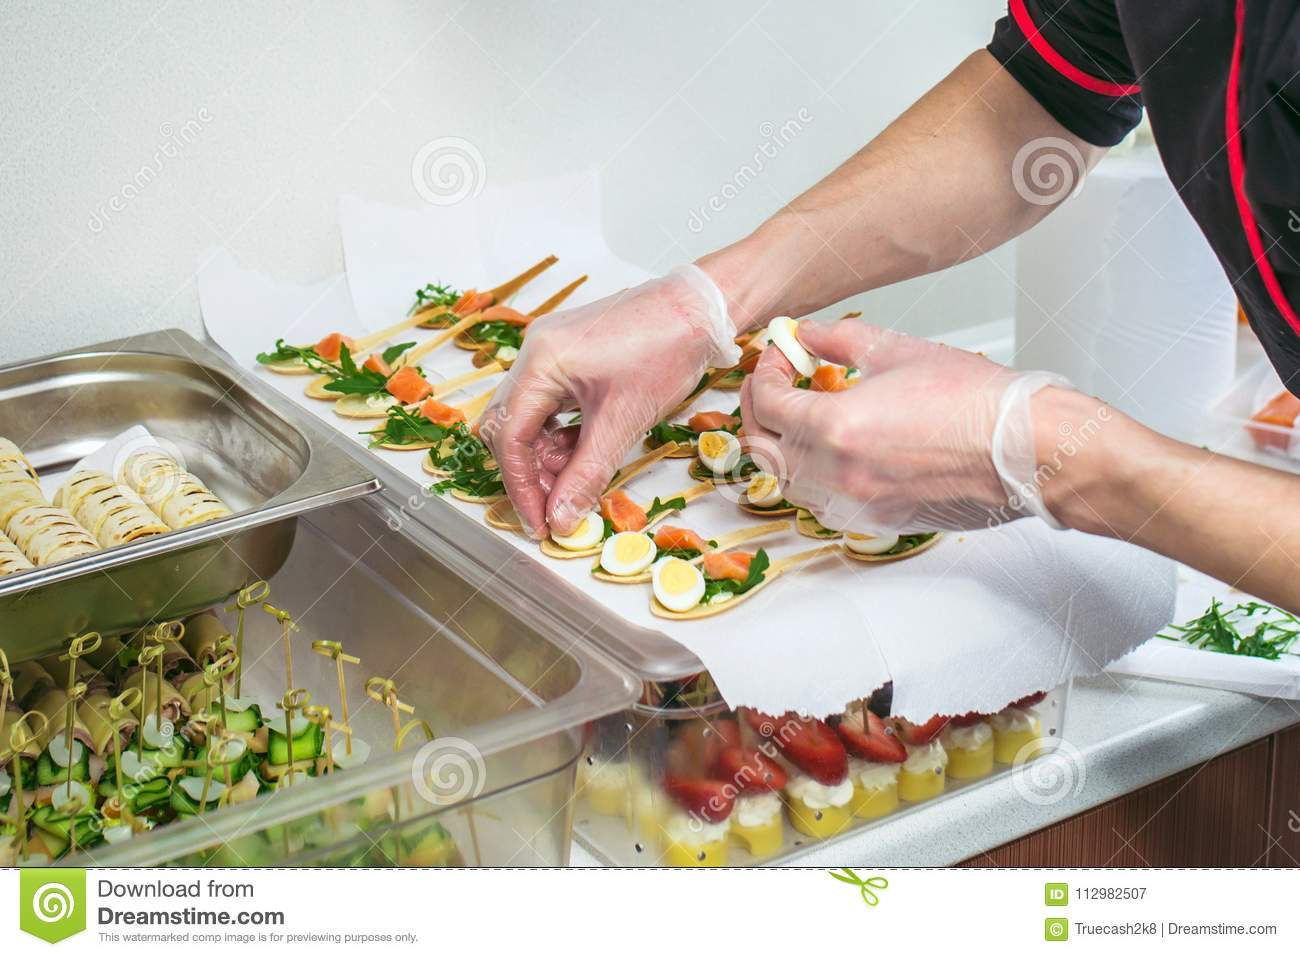 Chief at kitchen prepareing delicates, appetizers. Catering service. Closeup shoot of hands.